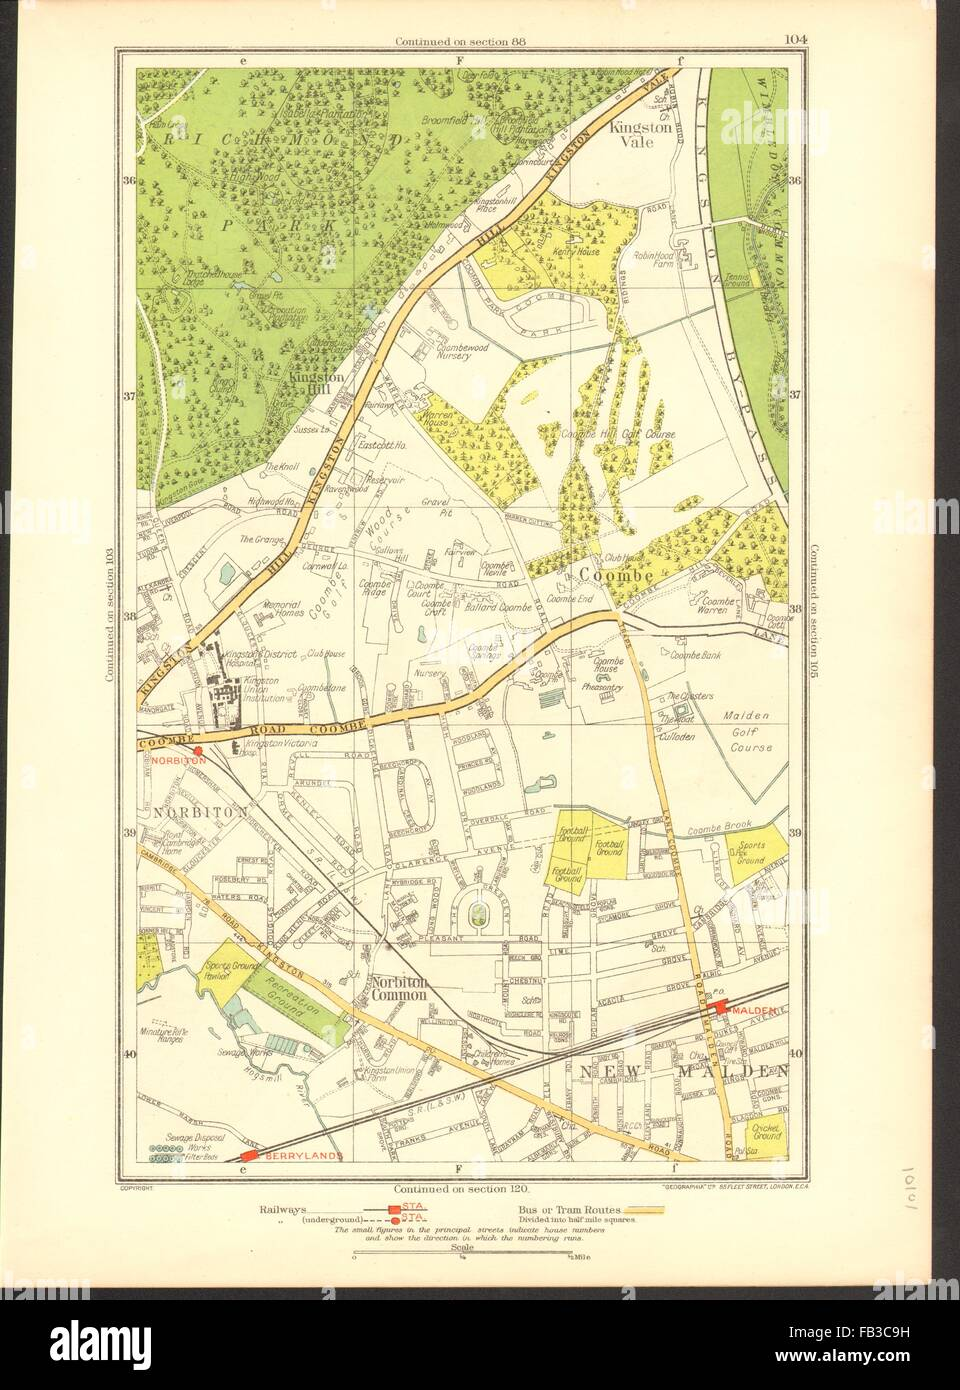 Norbiton Art Coombe Kingston Hill Kingston Vale New Malden Malden 1933 Old Map Sophisticated Technologies Antiques